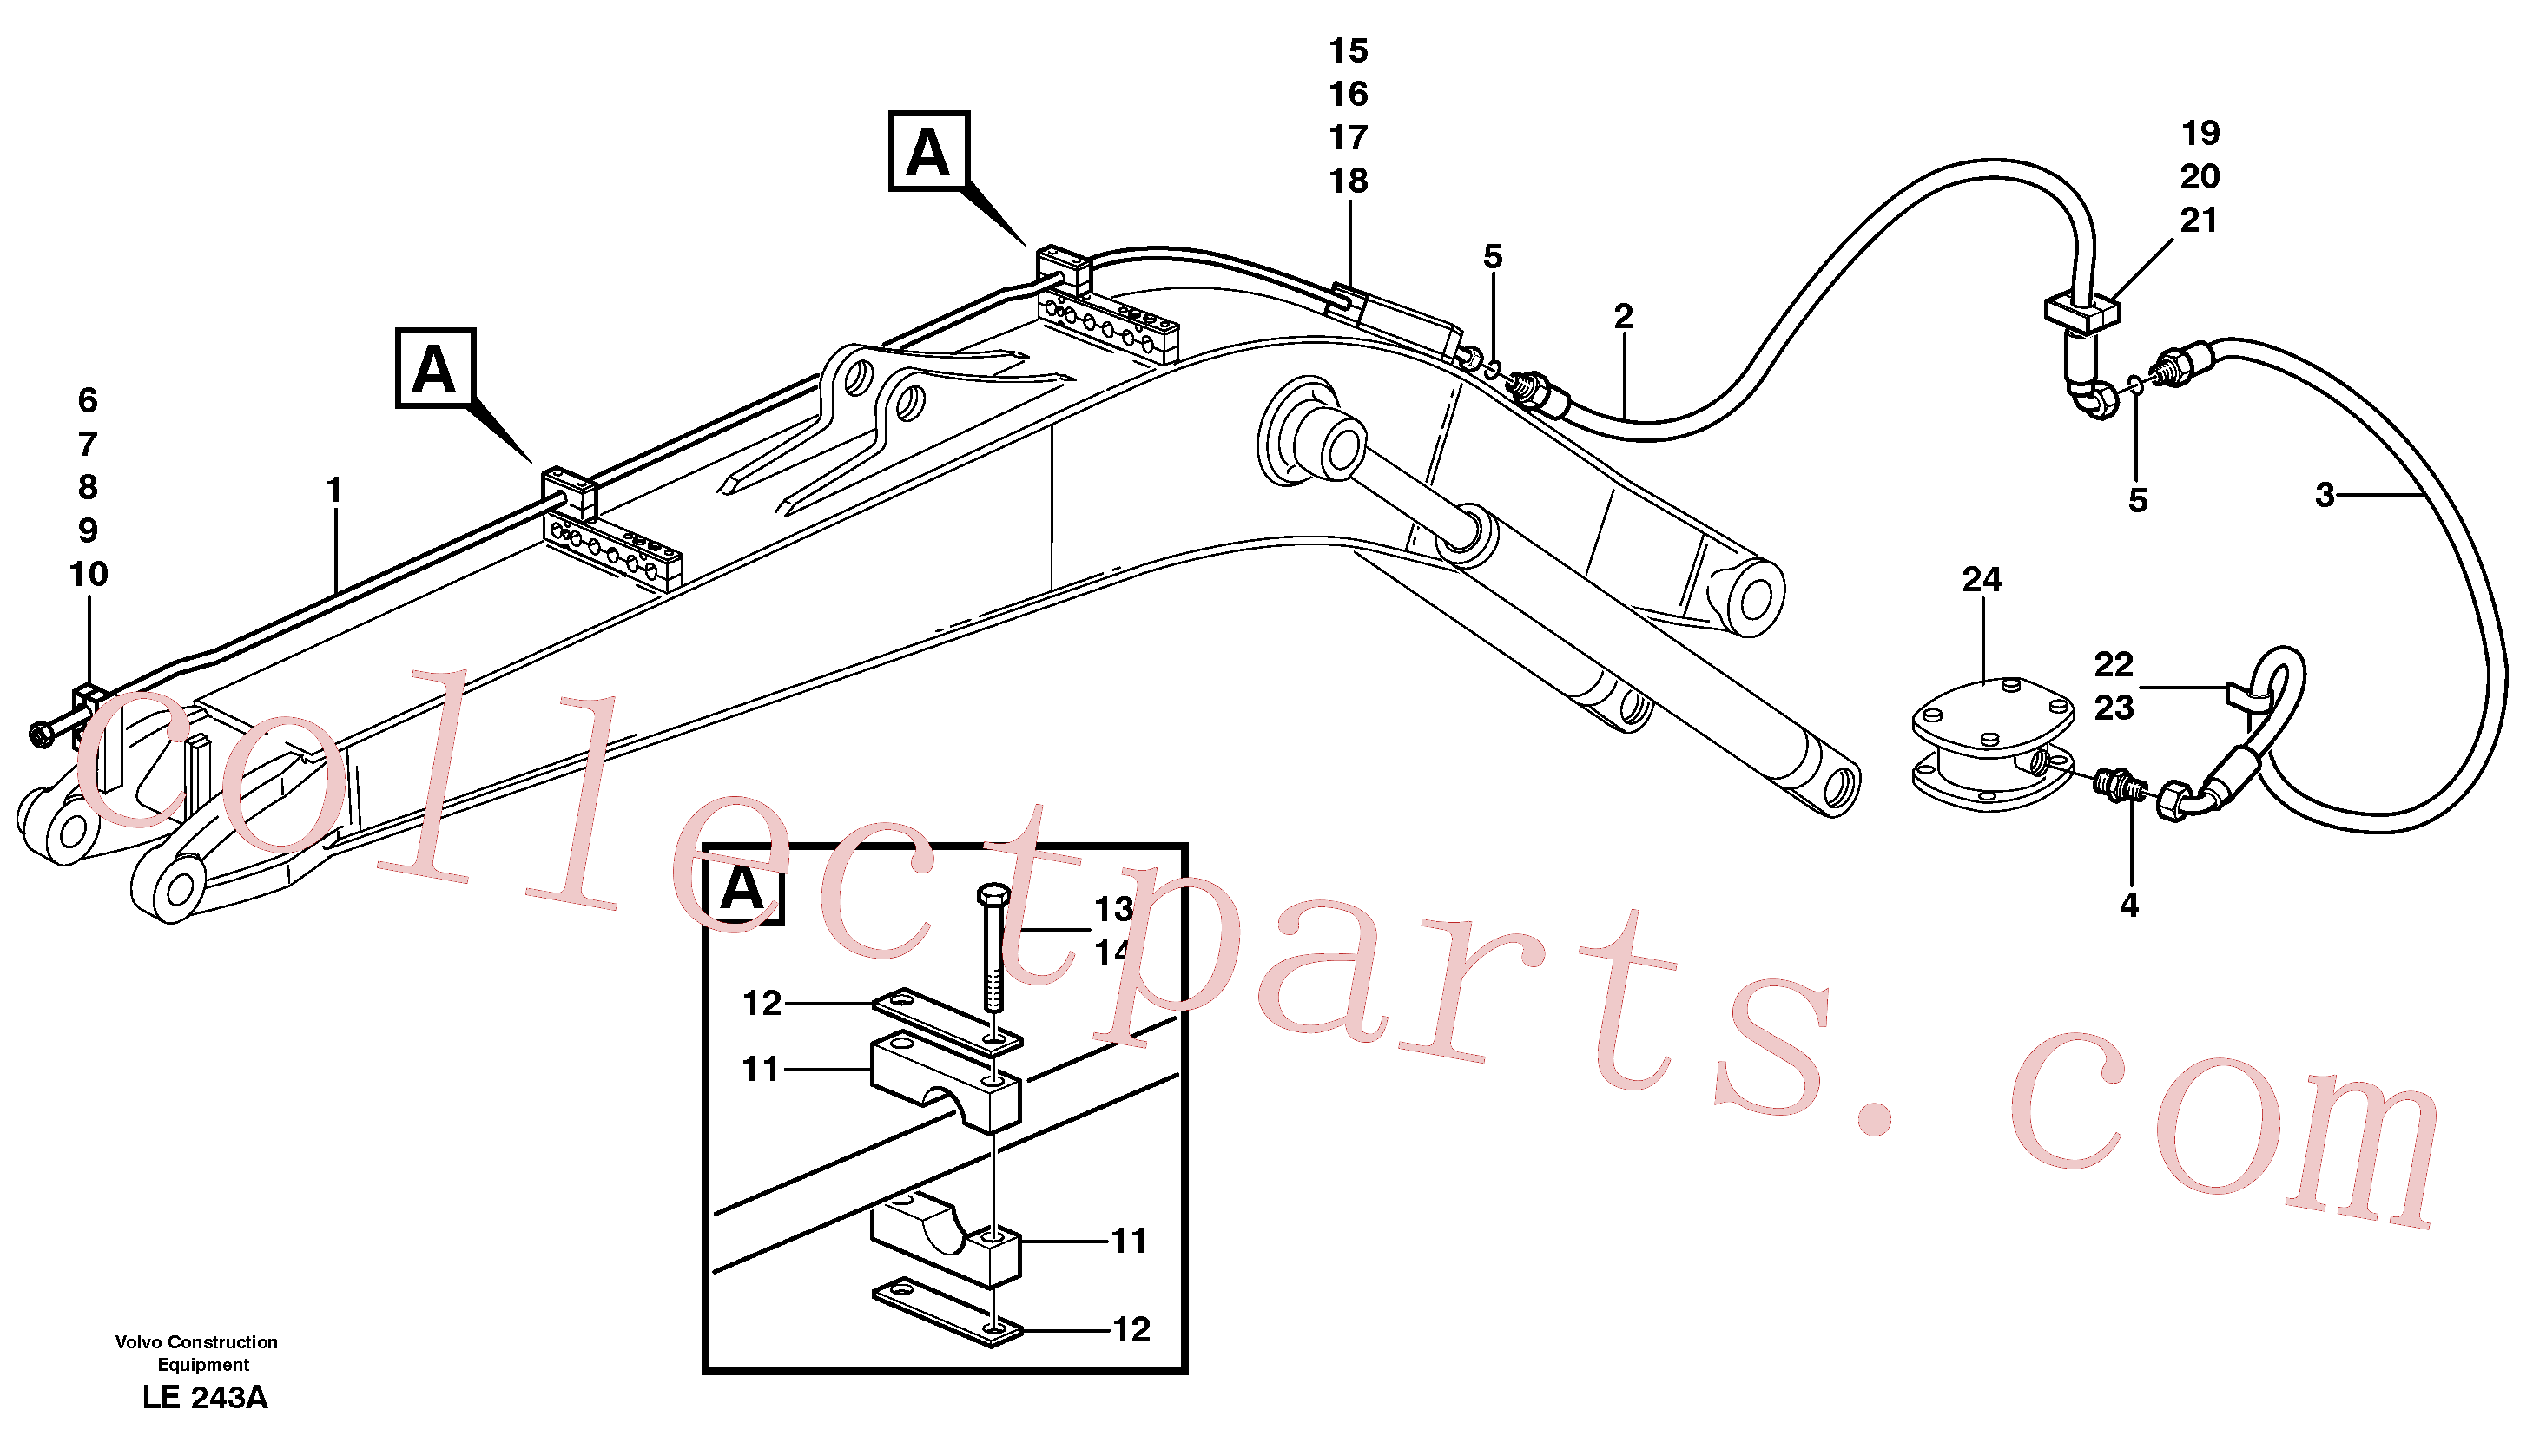 VOE14371654 for Volvo Hammer hydraulics on mono boom, return line(LE243A assembly)